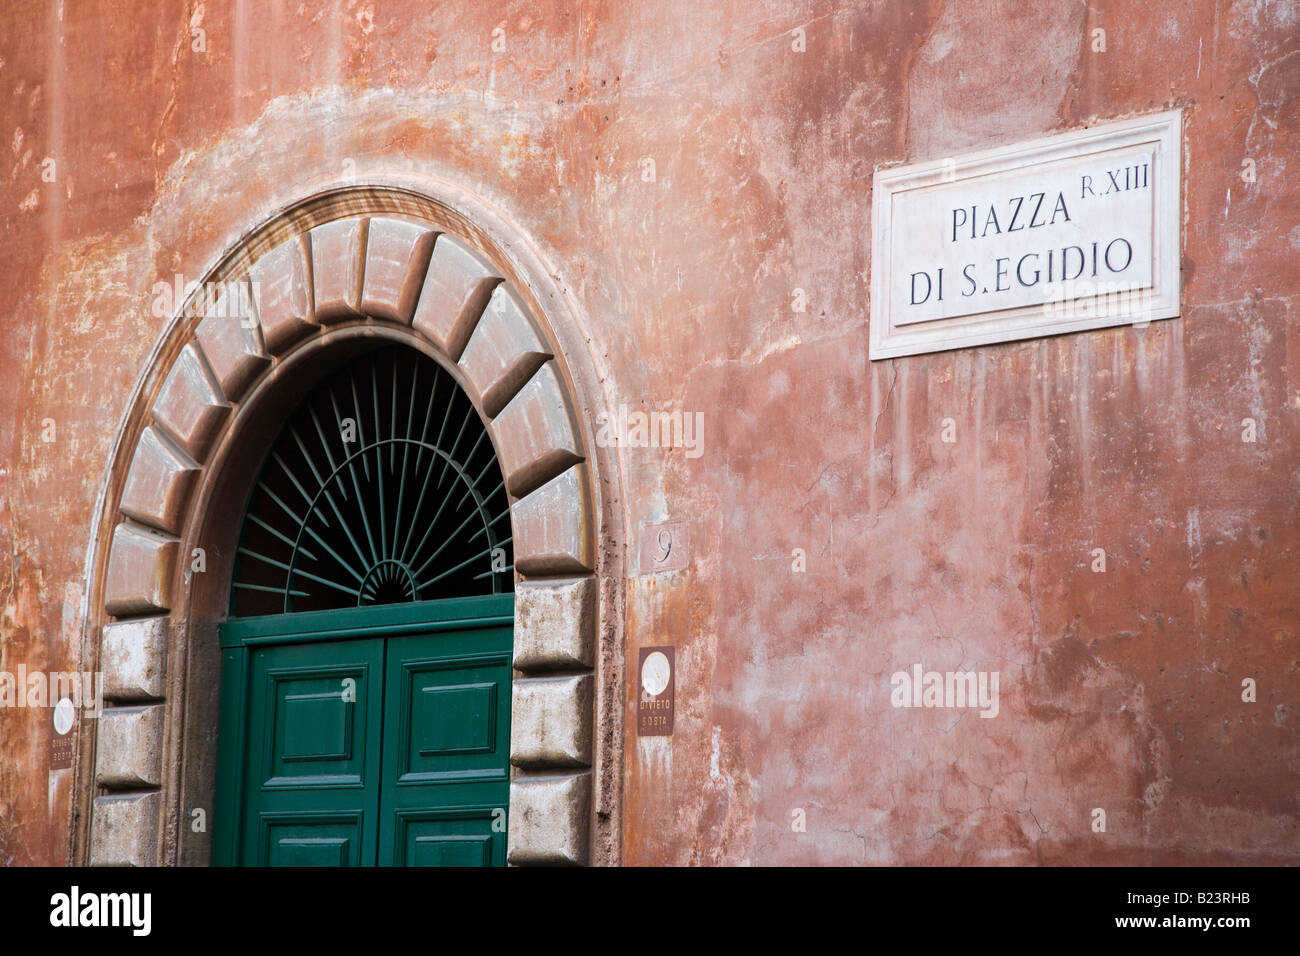 Buildings and architecture Trastevere Rome Italy - Stock Image